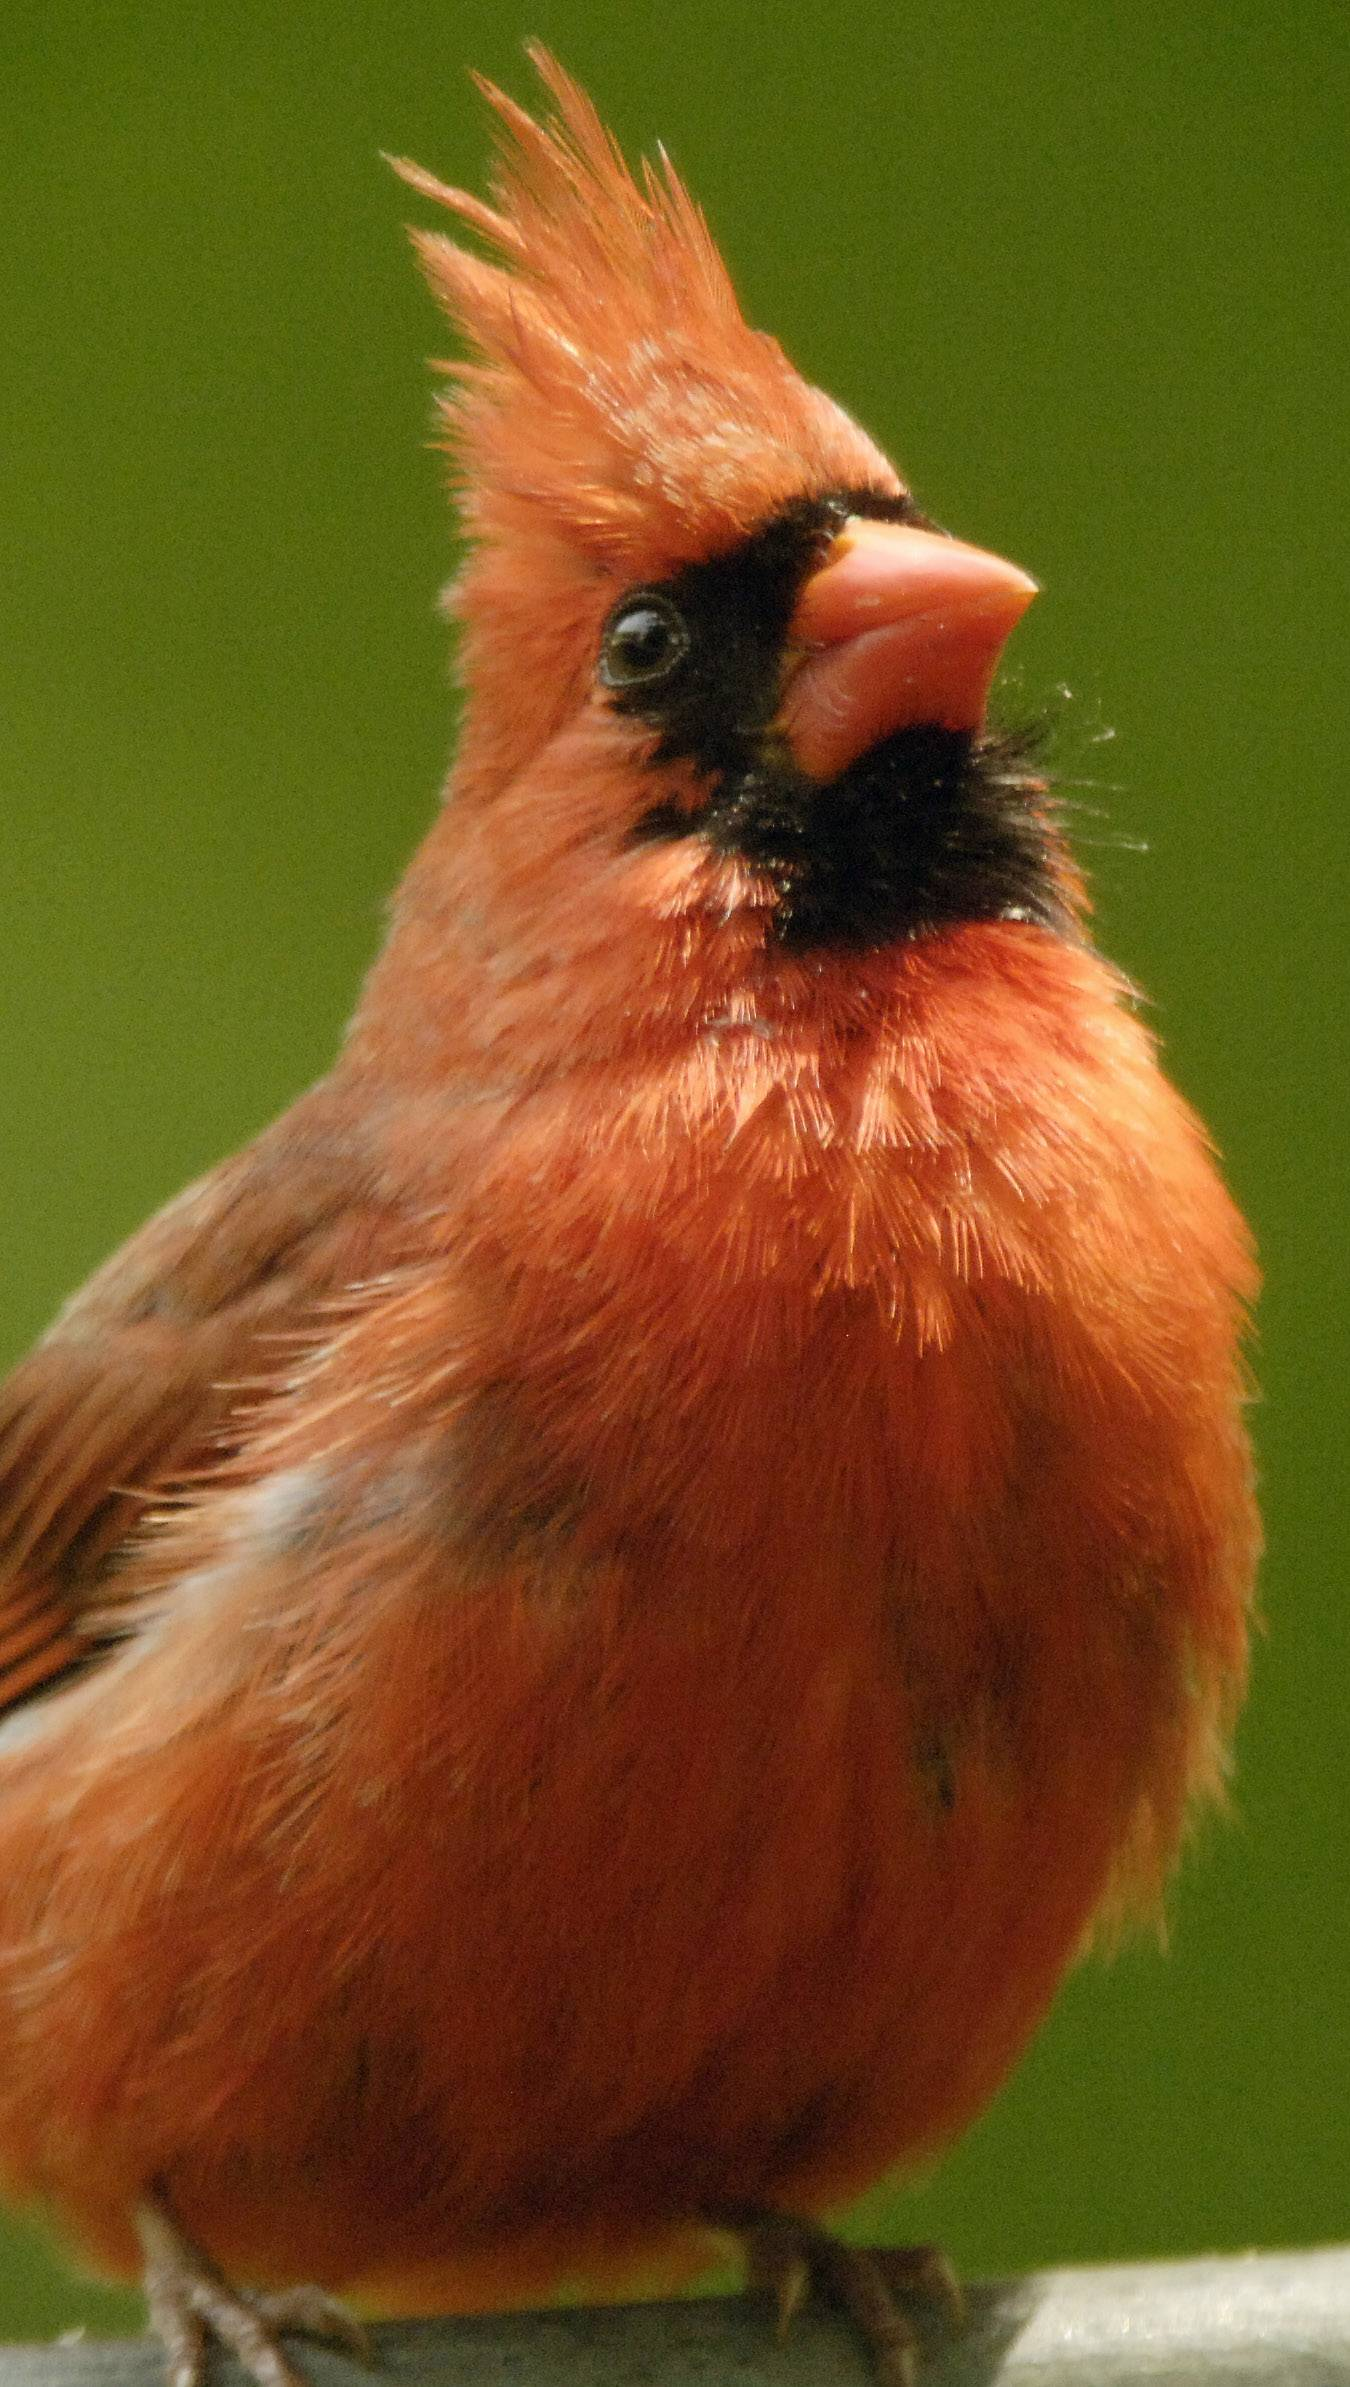 Songs of Illinois' state bird, the cardinal, herald the coming of spring.